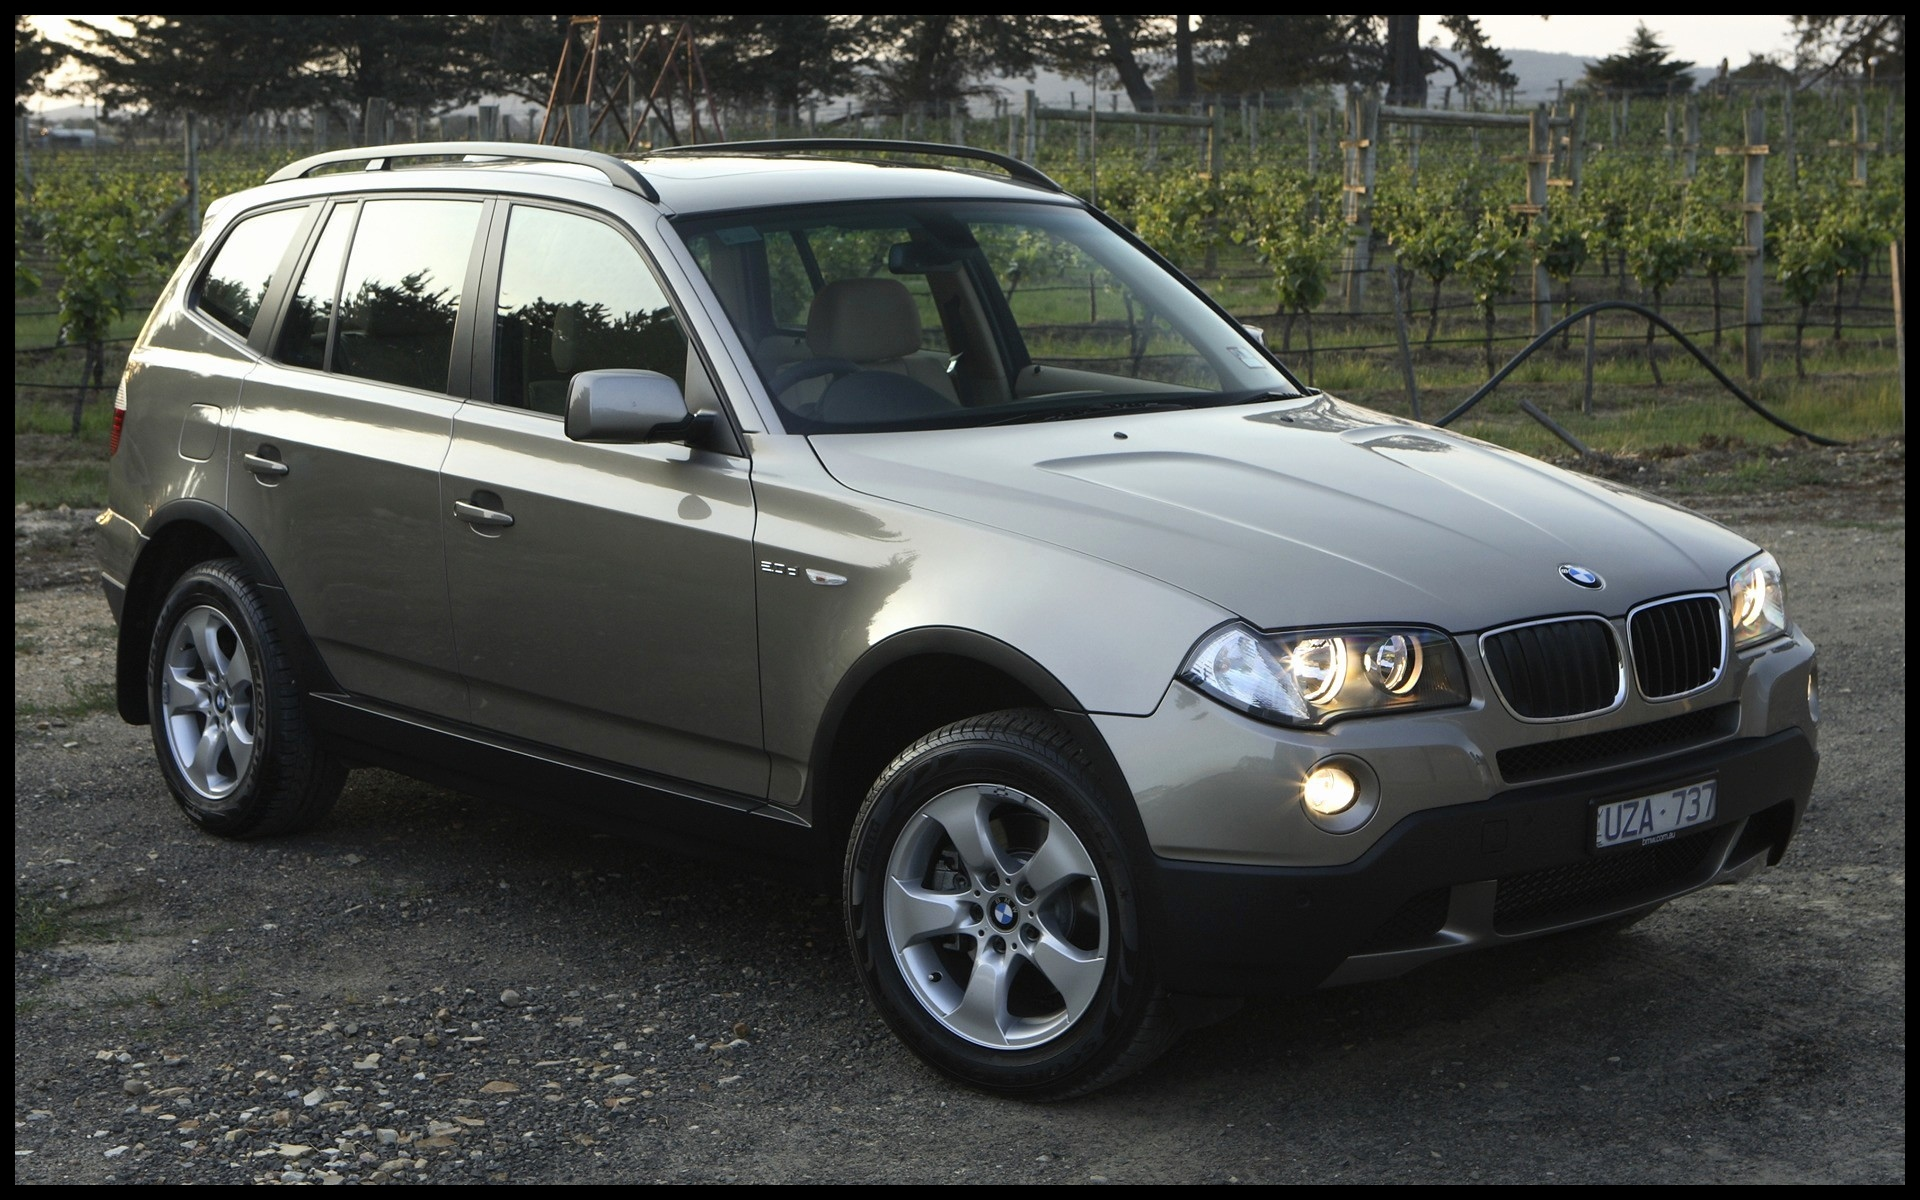 Bmw X3 New How to Wallpaper Lovely Acura 2008 Expensive Bmw X3 2 0d